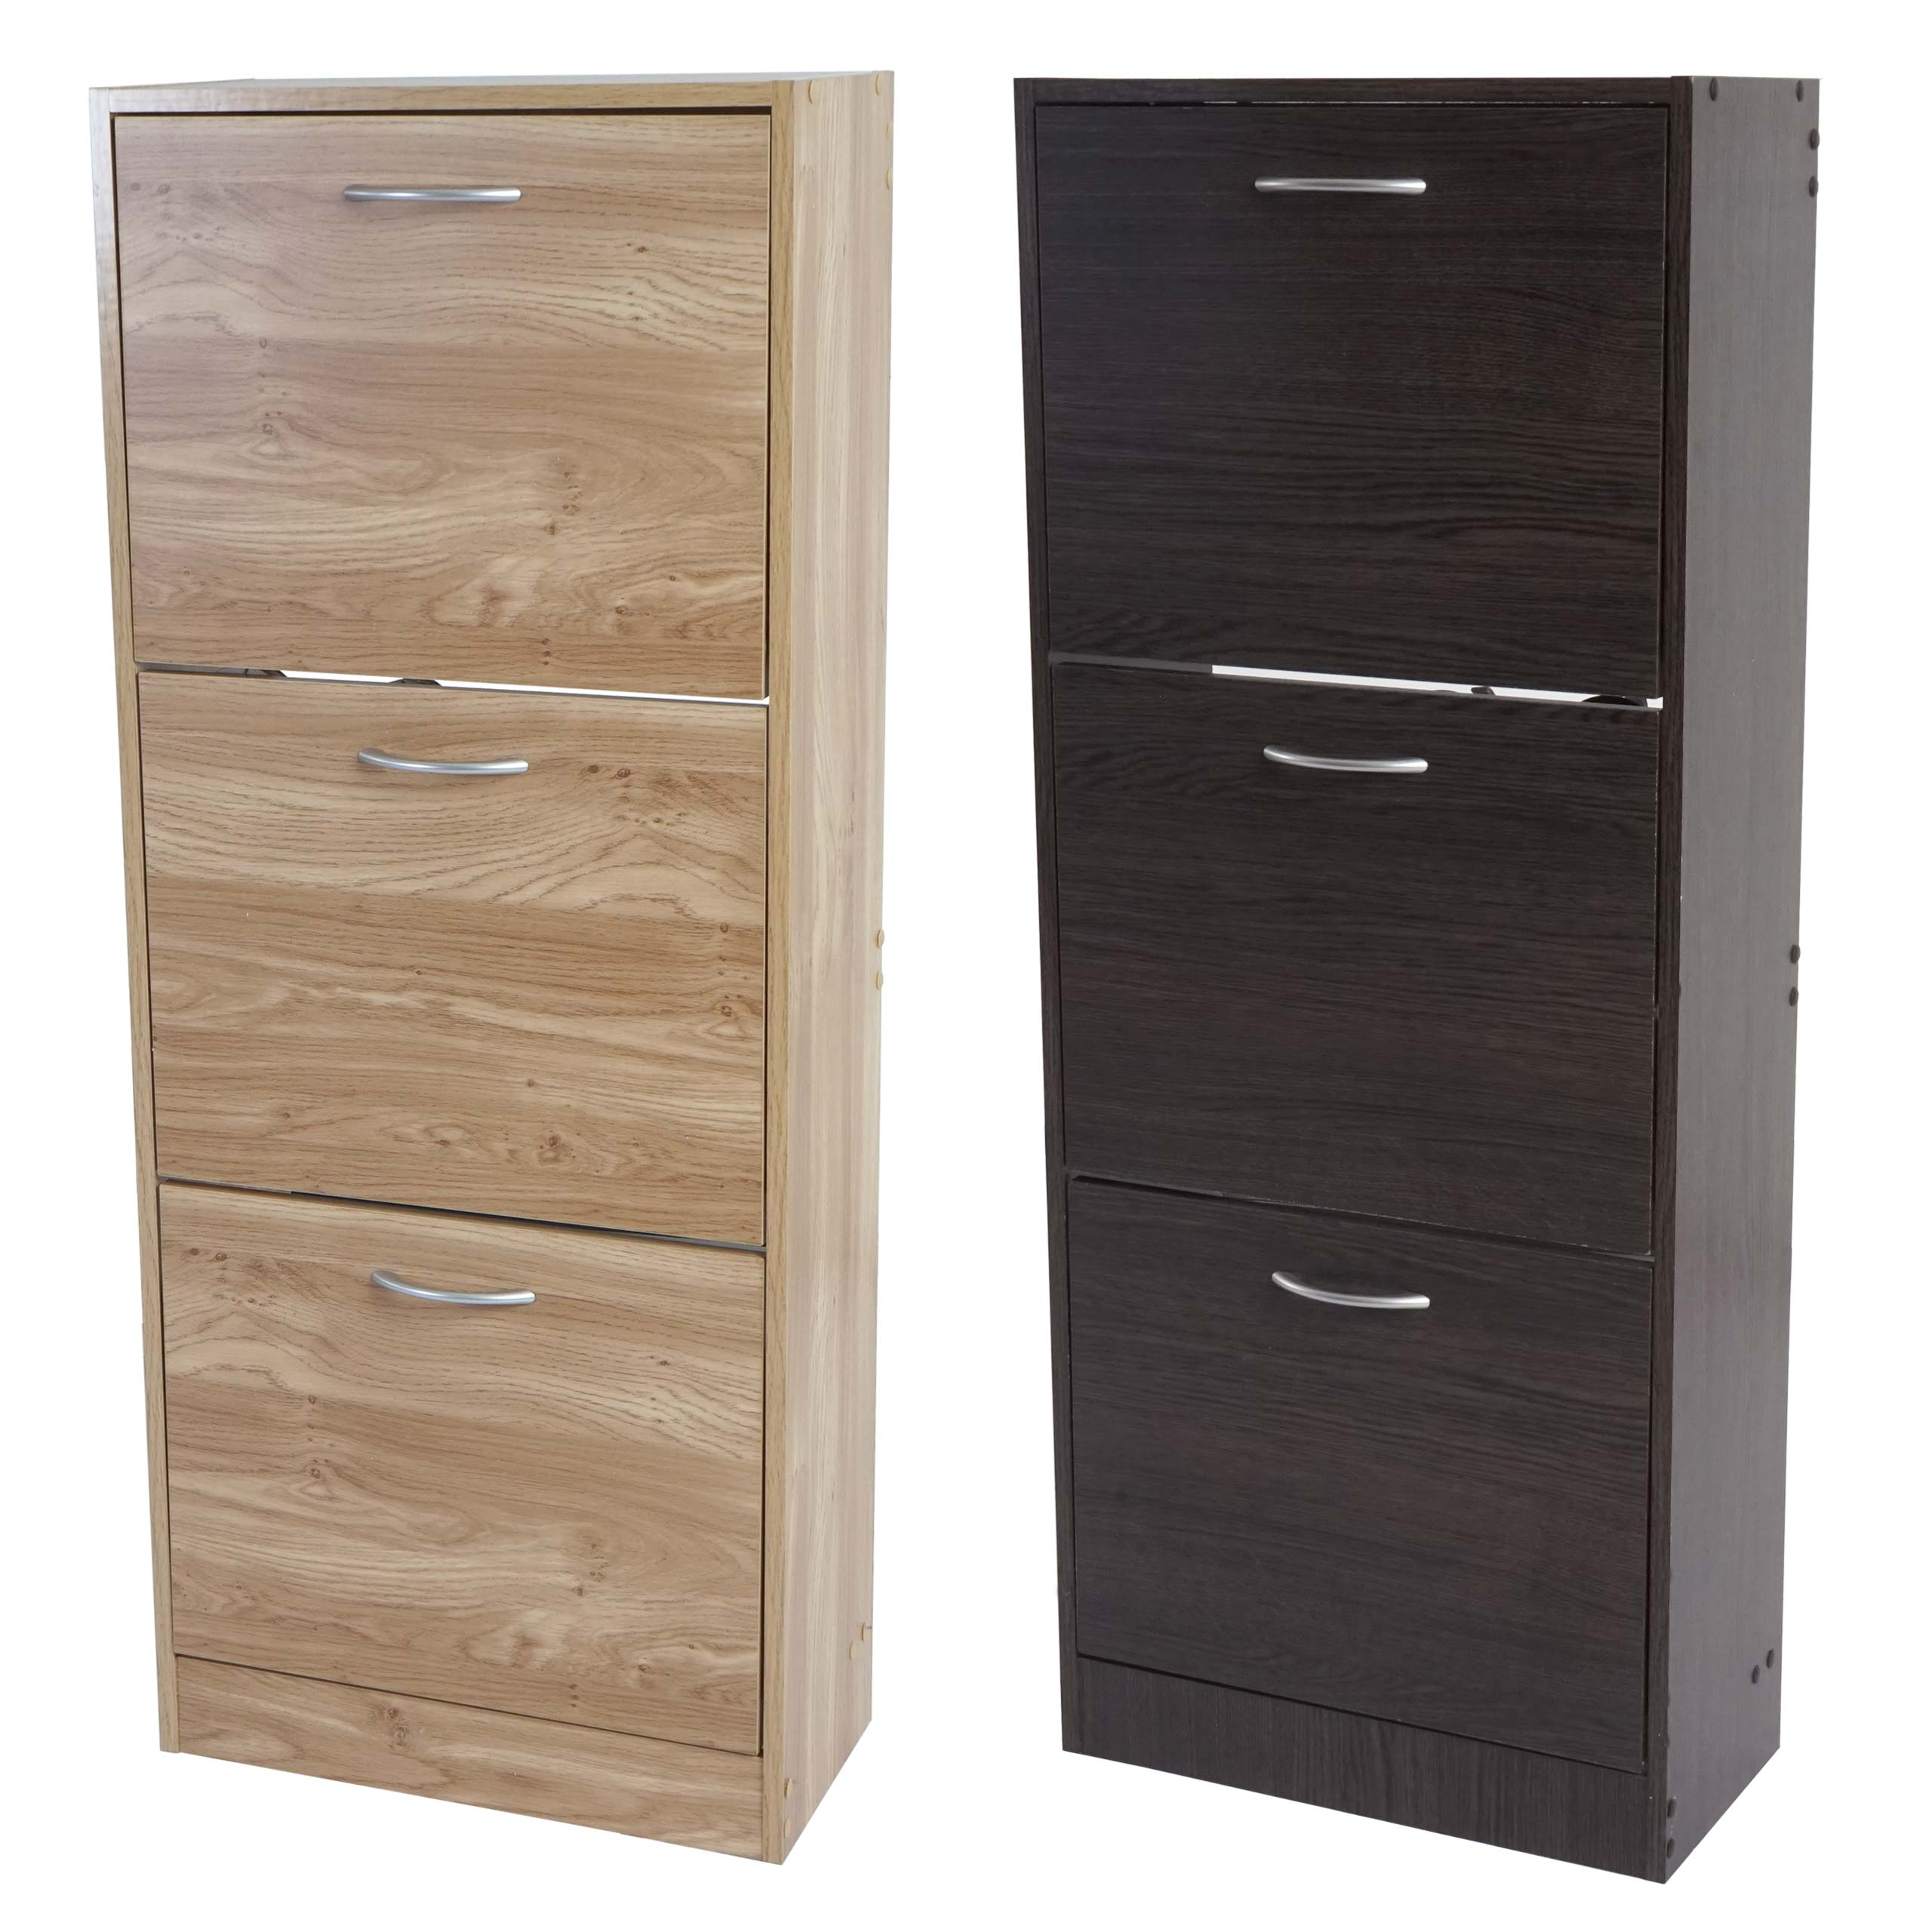 schuhkipper br ssel schuhschrank schuhkommode f r 12 paar schuhe ebay. Black Bedroom Furniture Sets. Home Design Ideas